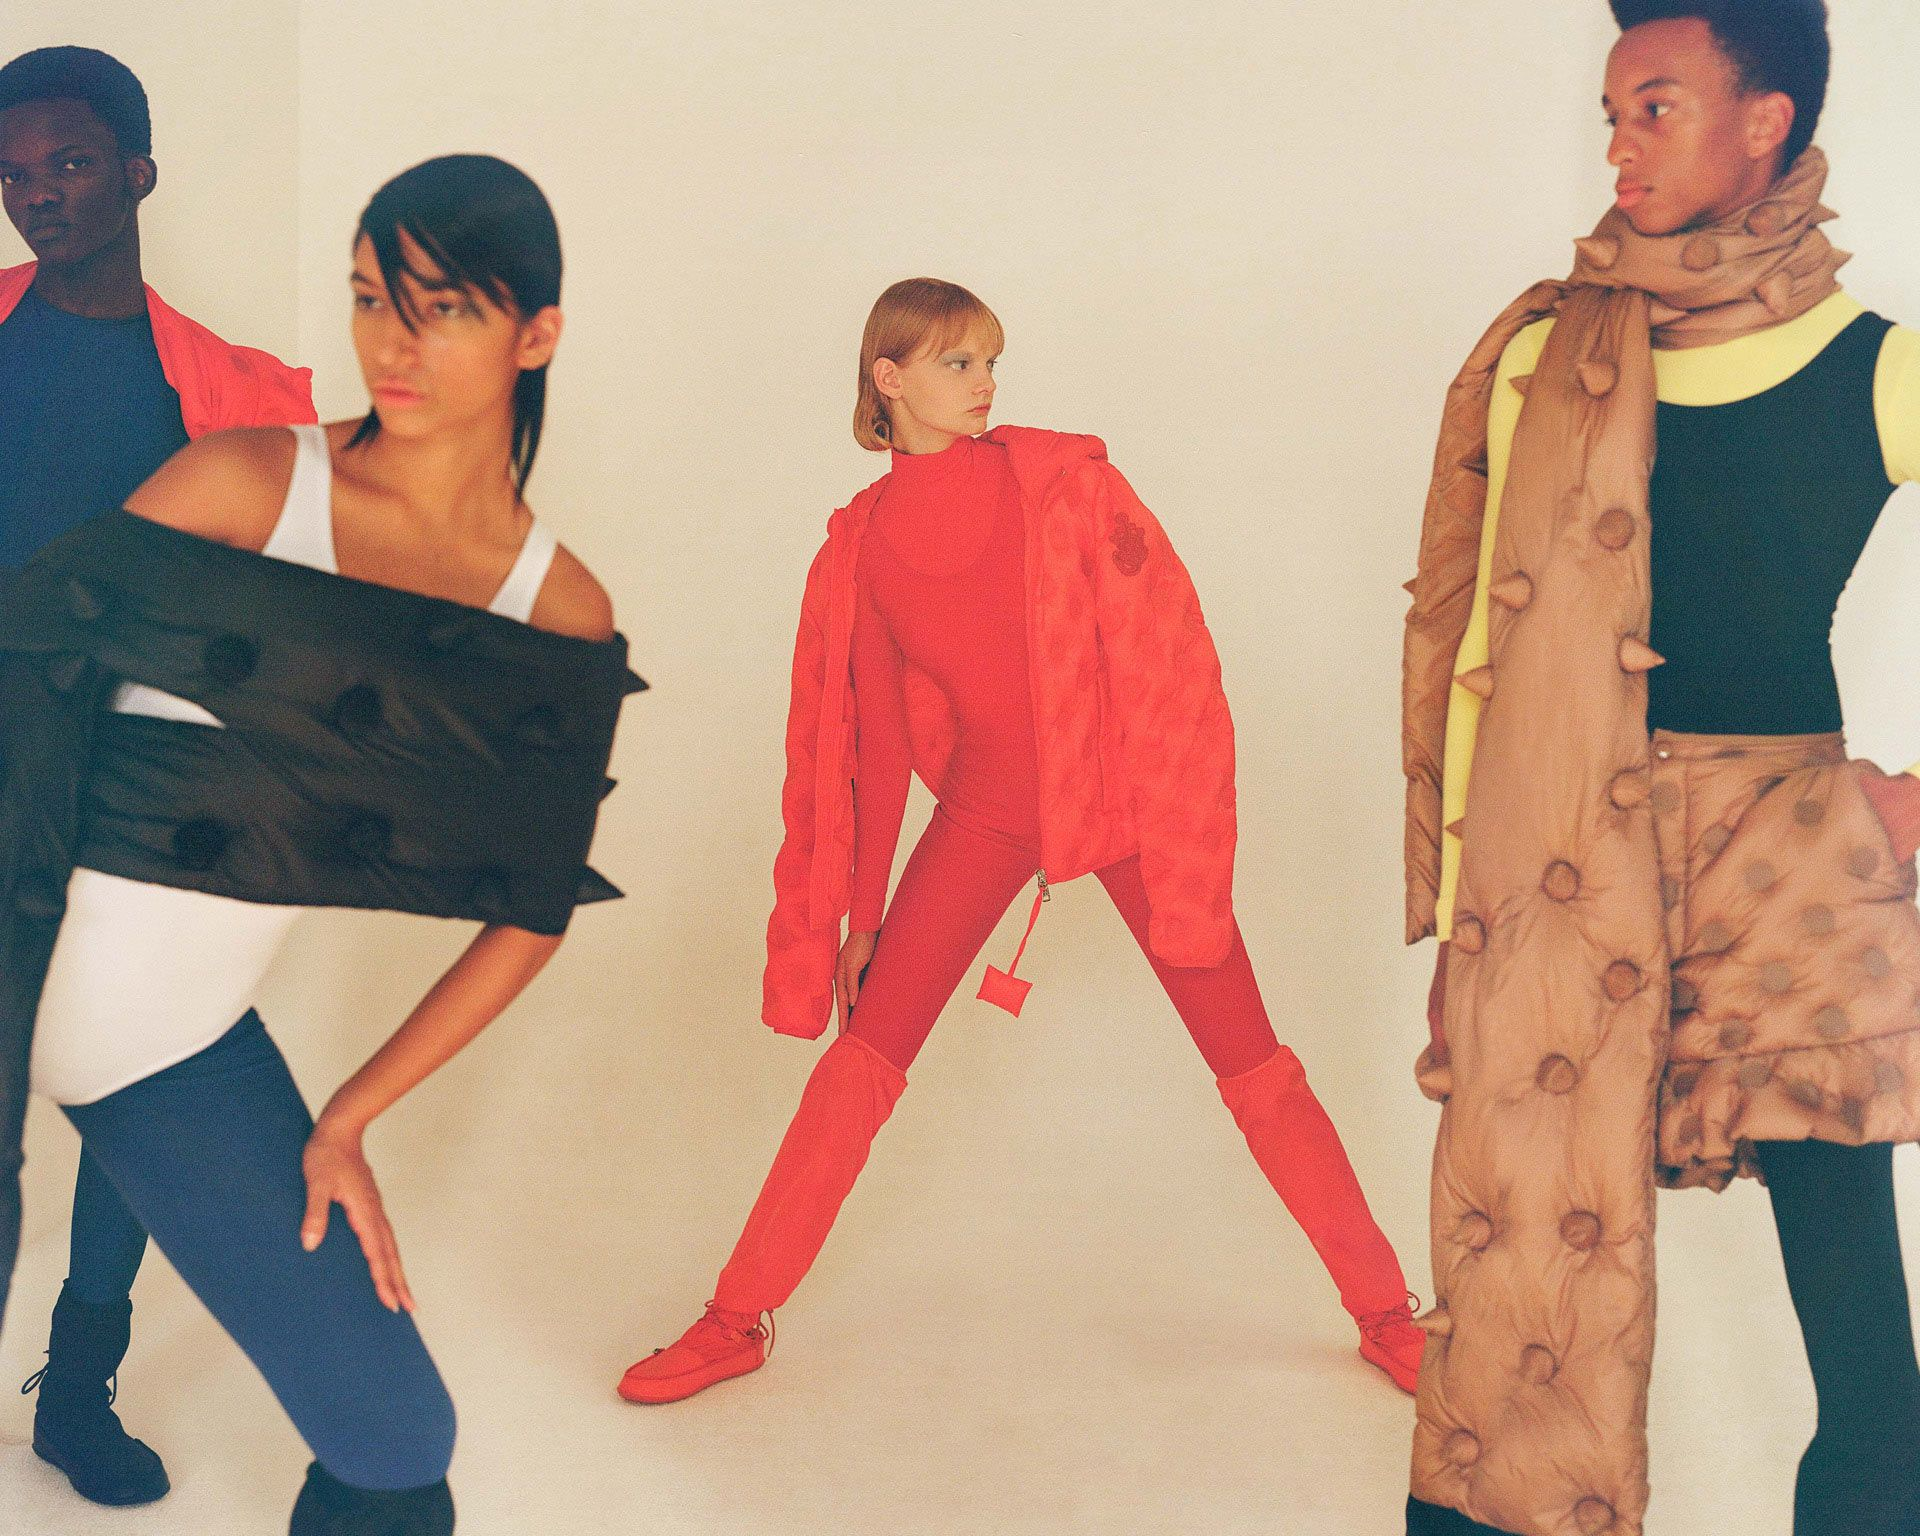 group of four models posing differently wearing different colors of puffy spiked coats photographed by Oumayma B Tanfous for Moncler as a story for Document Journal magazine